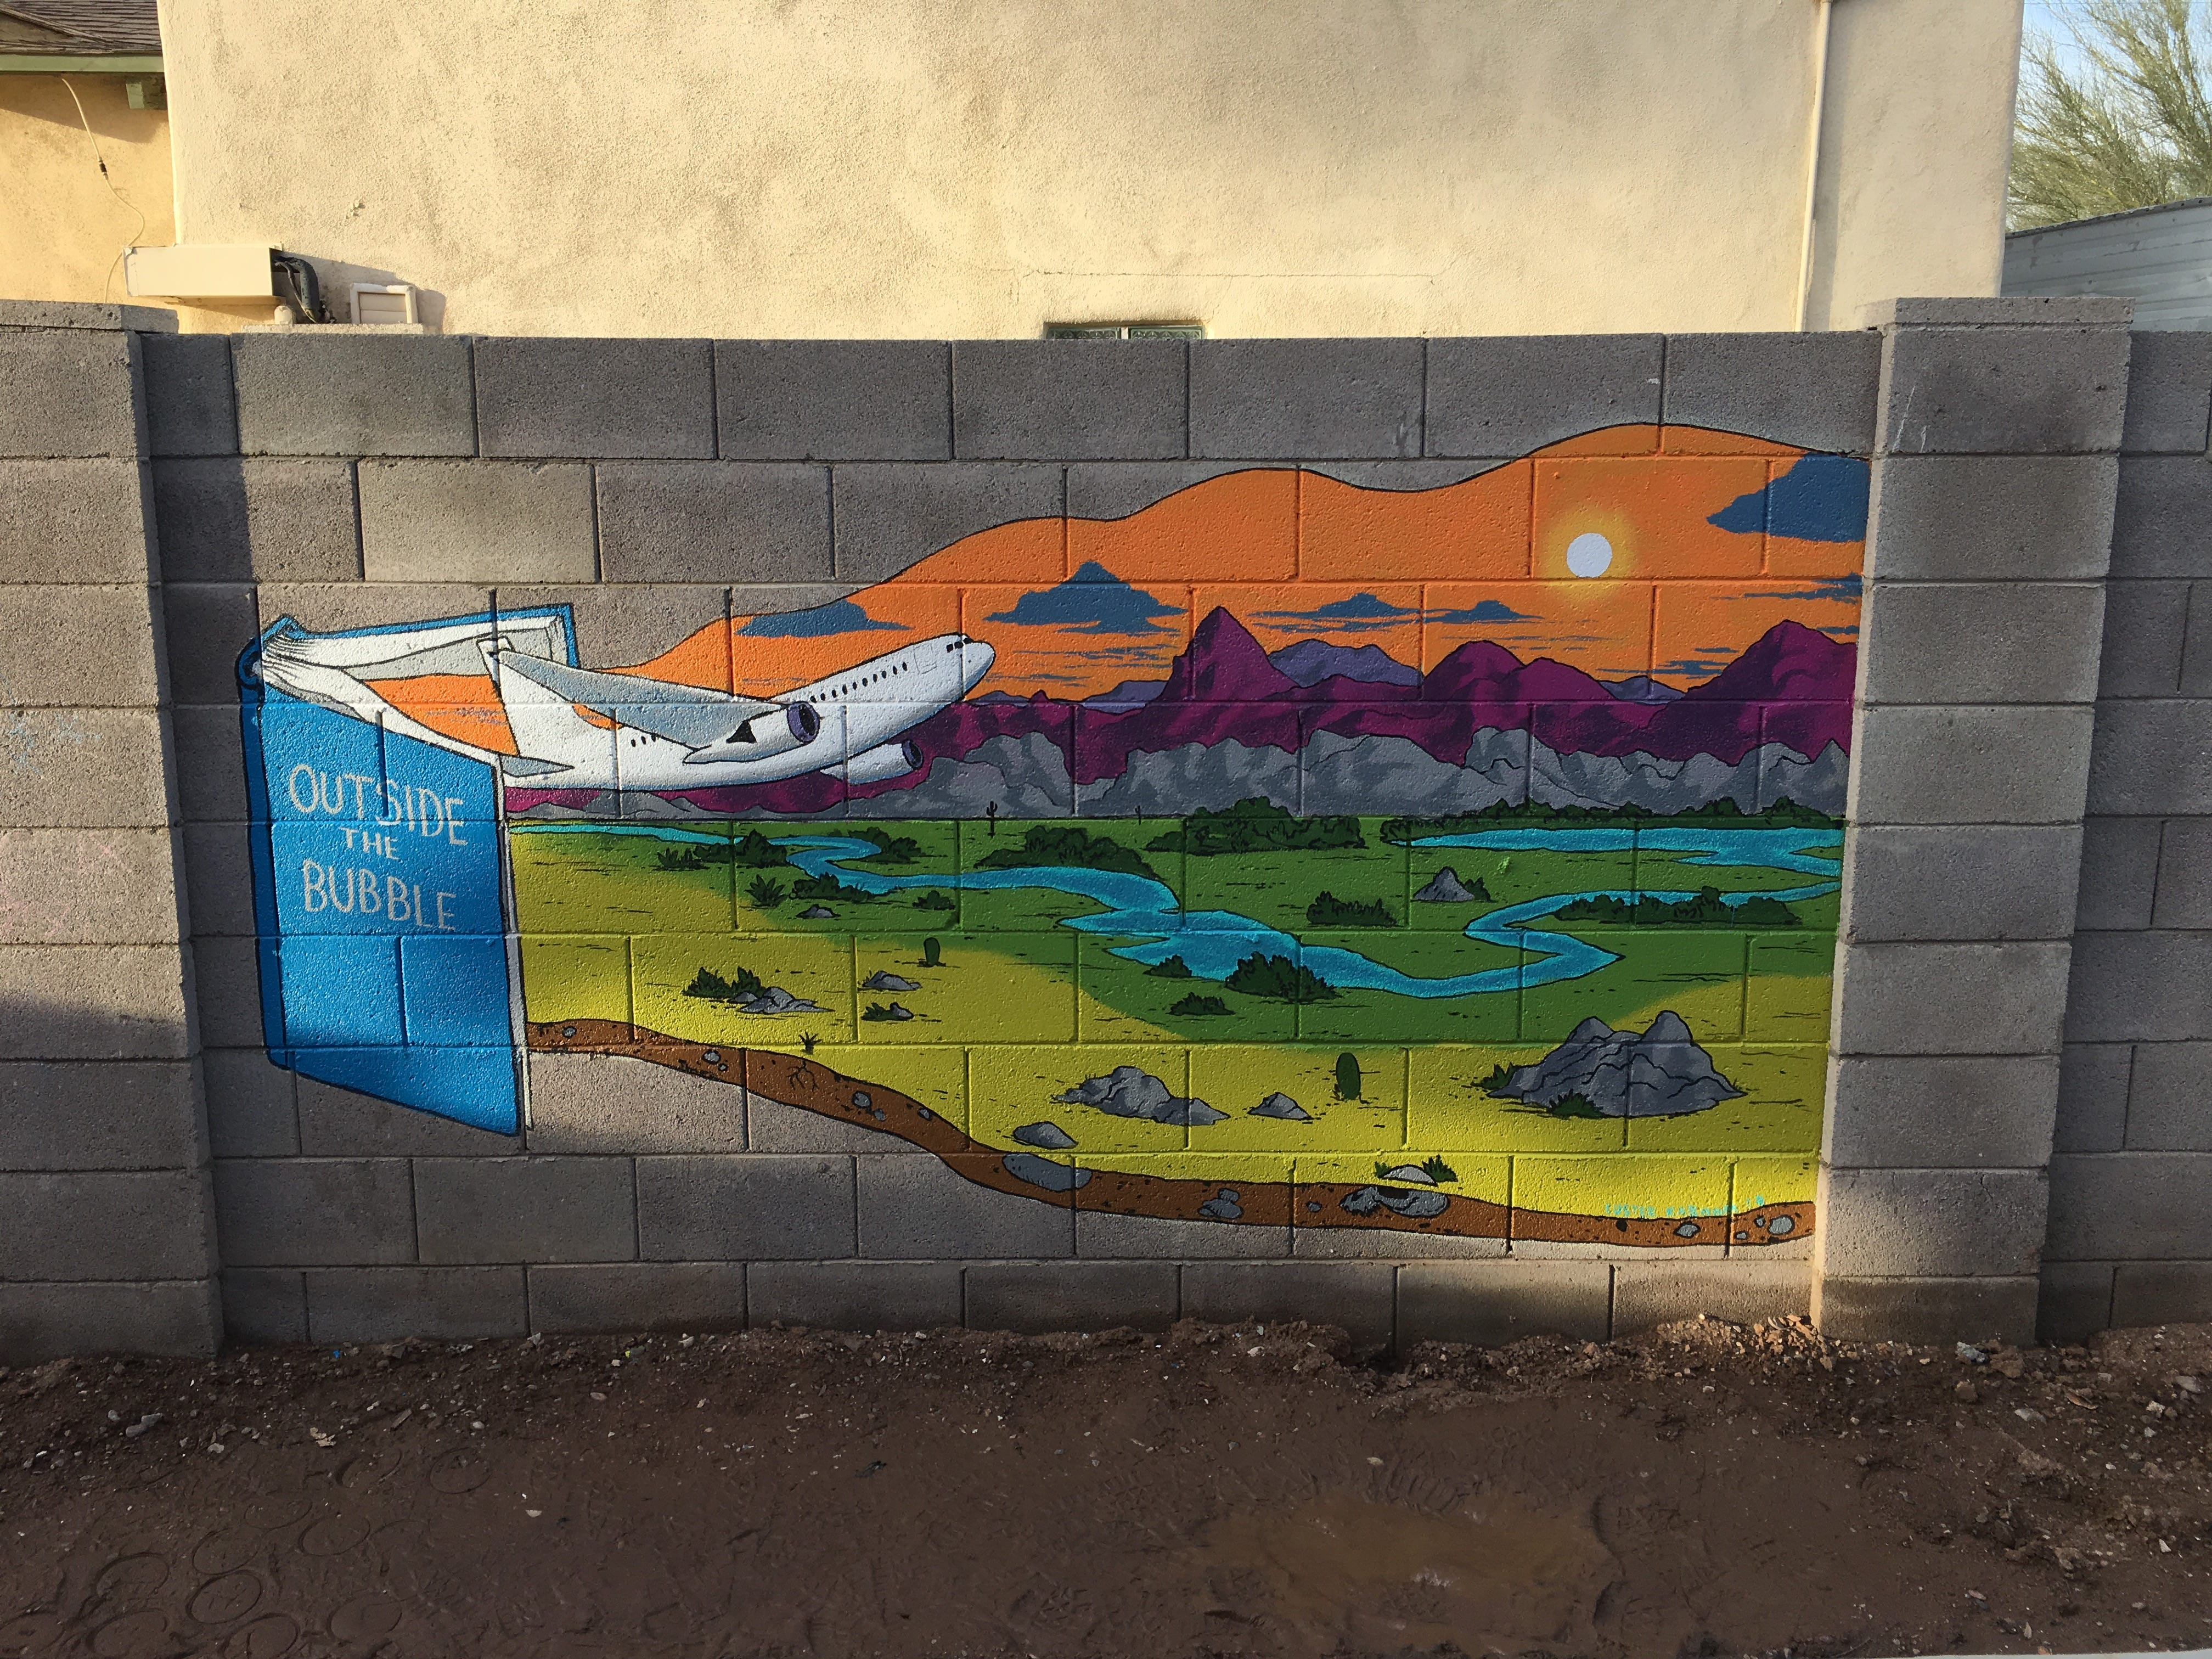 This mural was designed and painted by Luster Kaboom, a local artist, during the 2019 Coronado Historic Home Tour. The design reflects the owners' love of travel and reading.